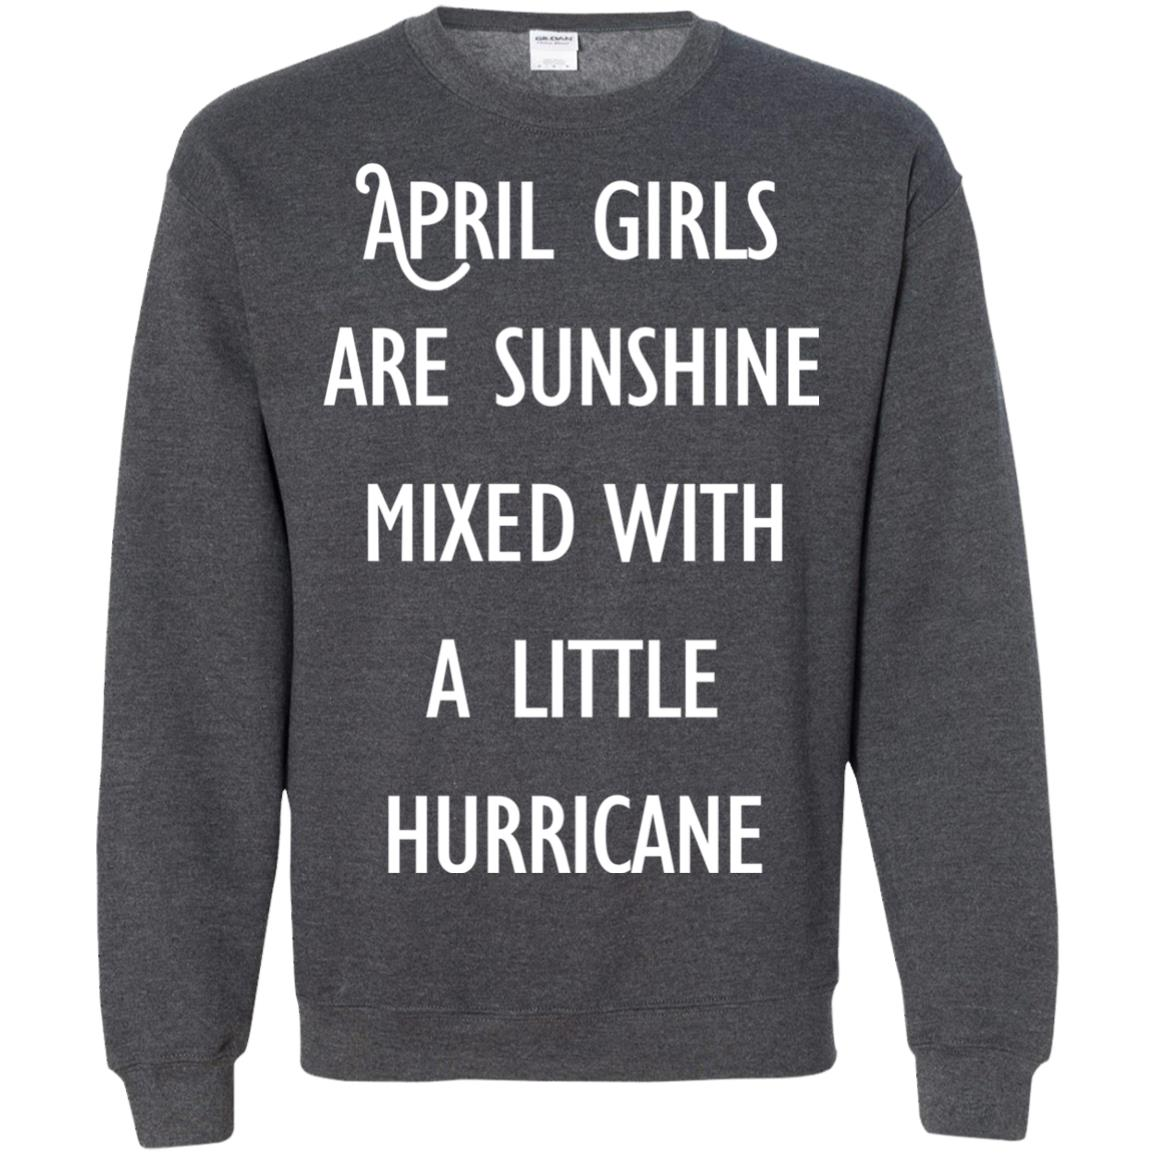 image 202 - April Girls Are Sunshine Mixed With A Little Hurricane T-shirt